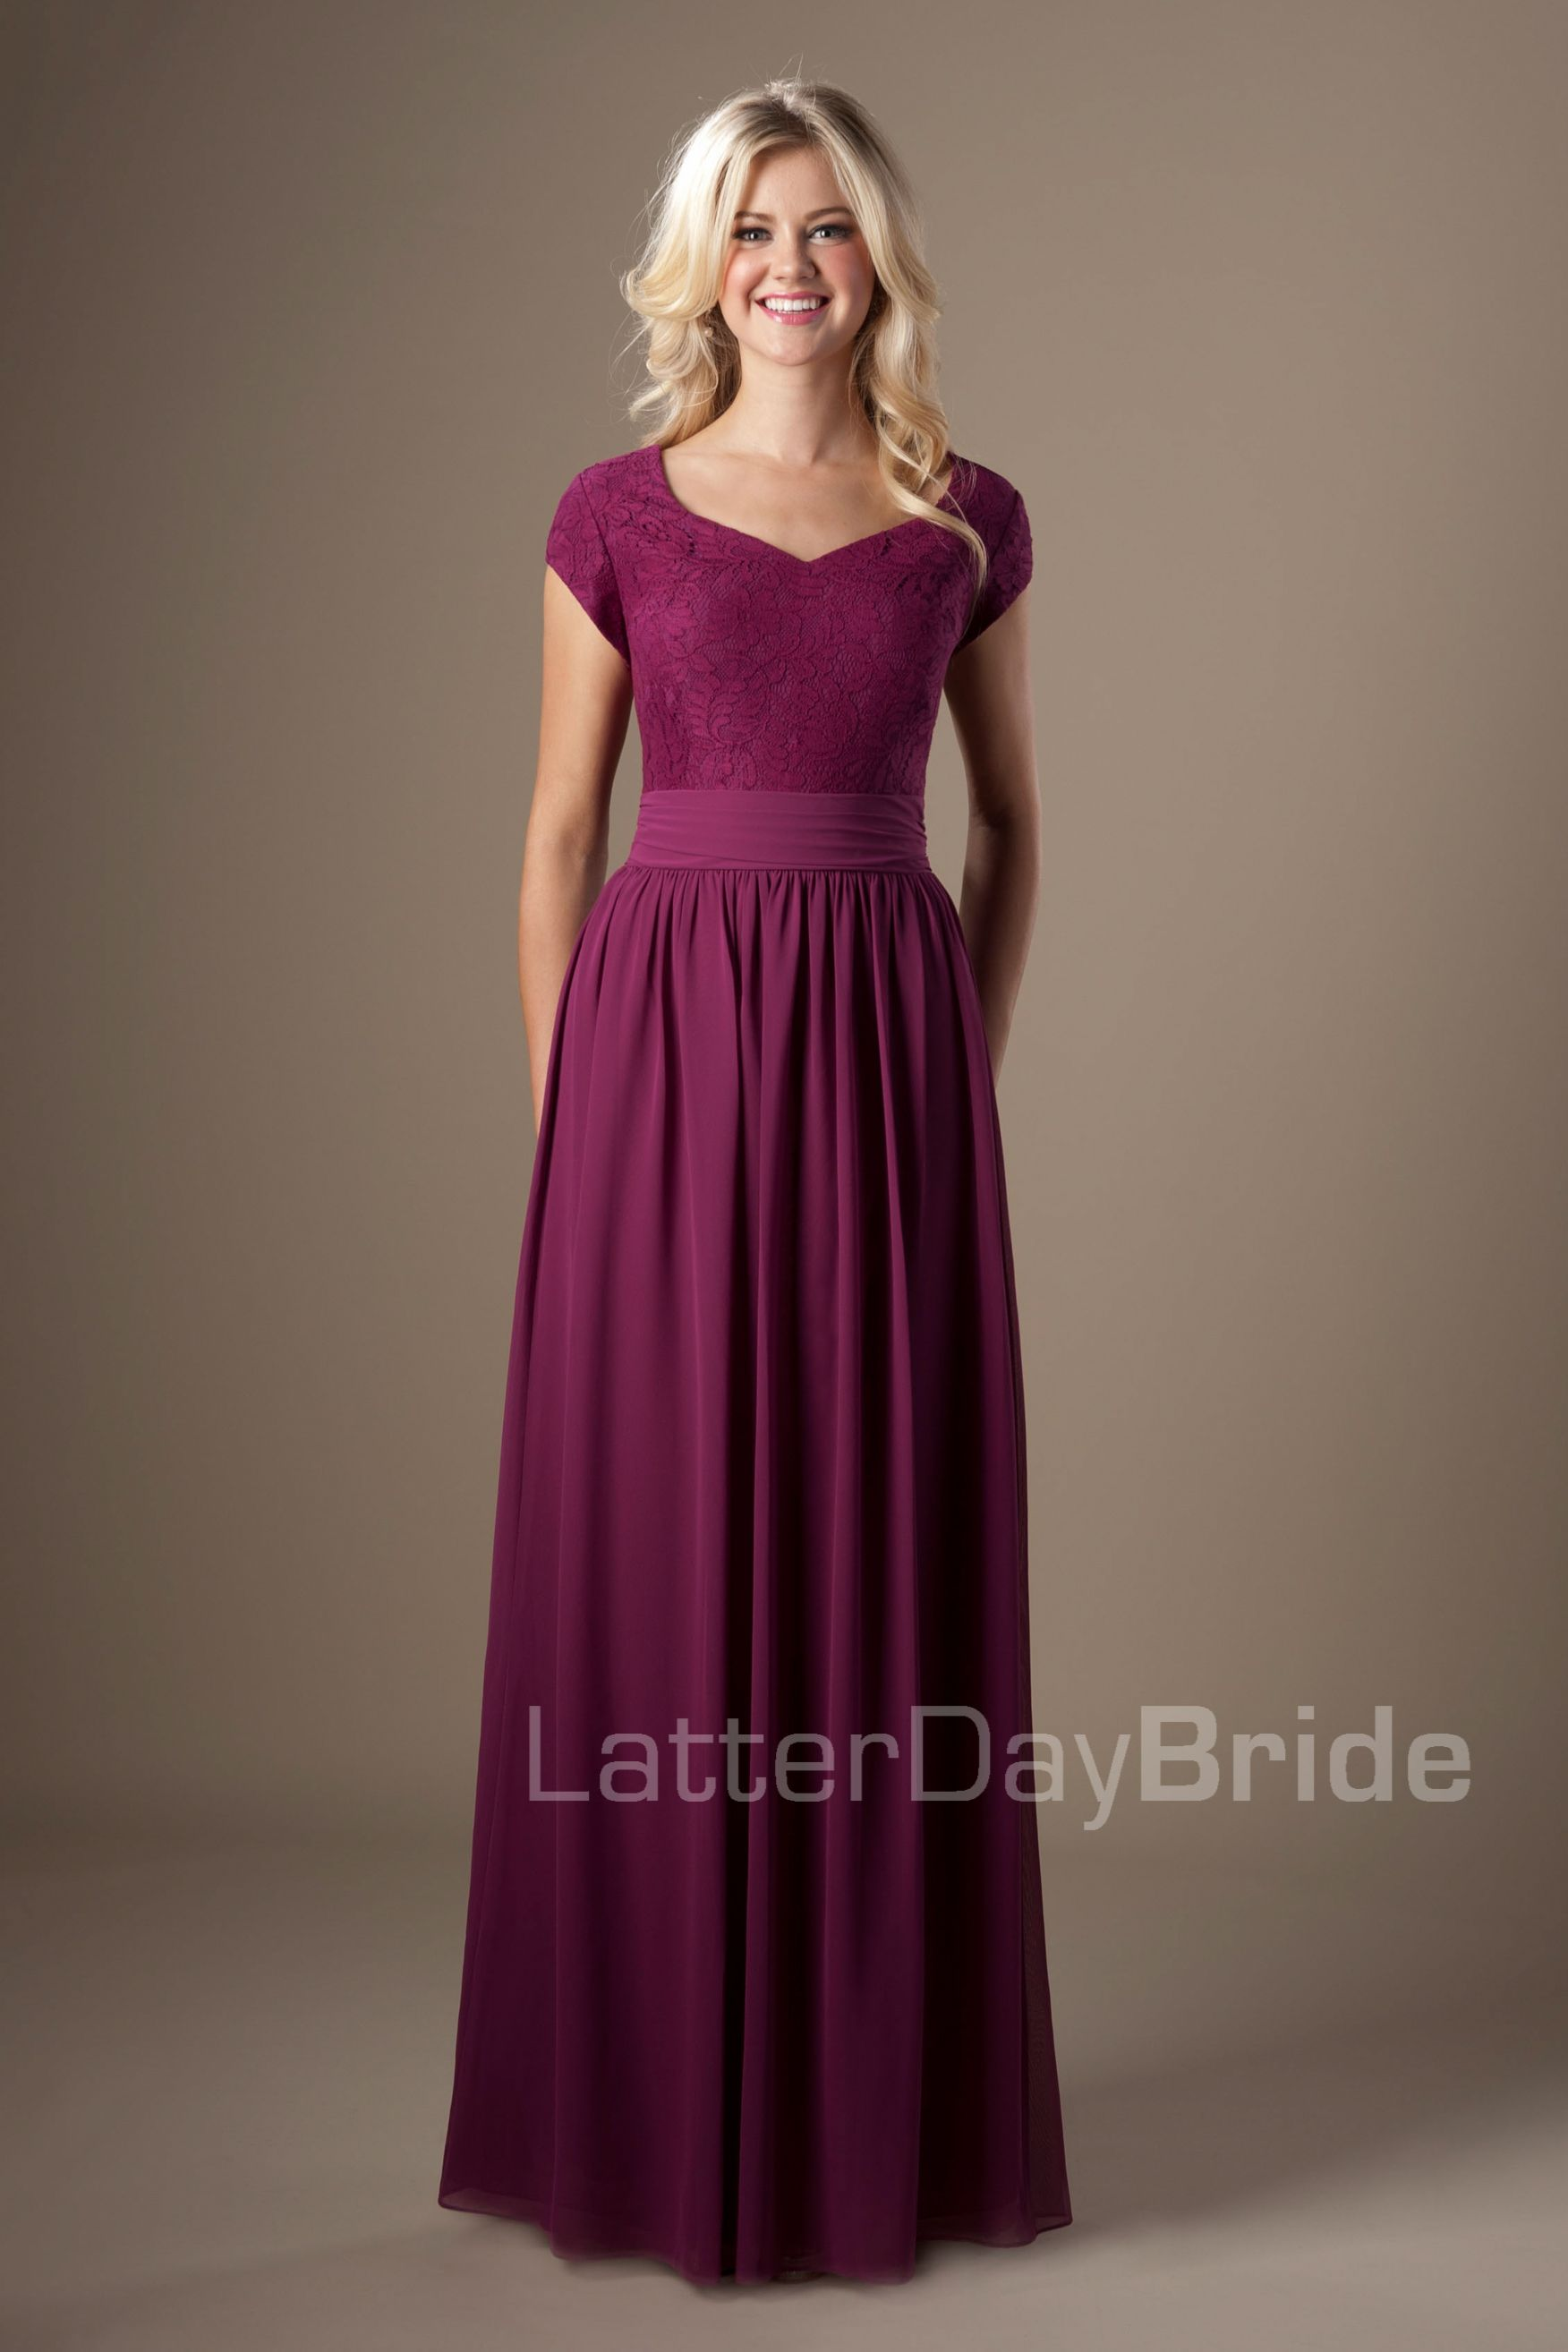 Modest bridesmaid dresses june available at latterday bride modest bridesmaid dresses june available at latterday bride see more at latterdaybride ombrellifo Image collections